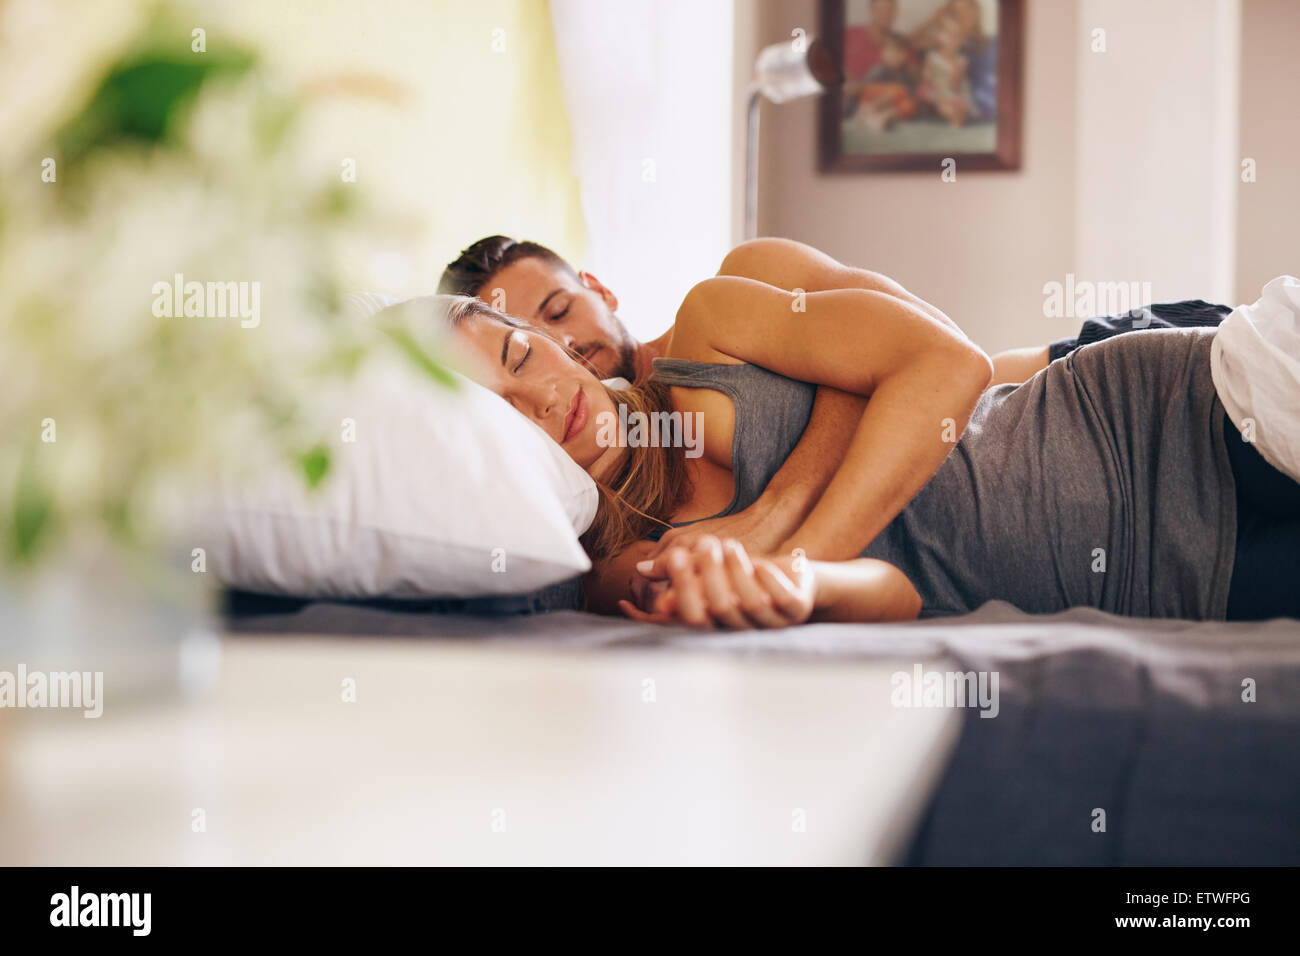 Image of young couple sleeping soundly in bed together. Husband and wife sleeping together in their bedroom. - Stock Image